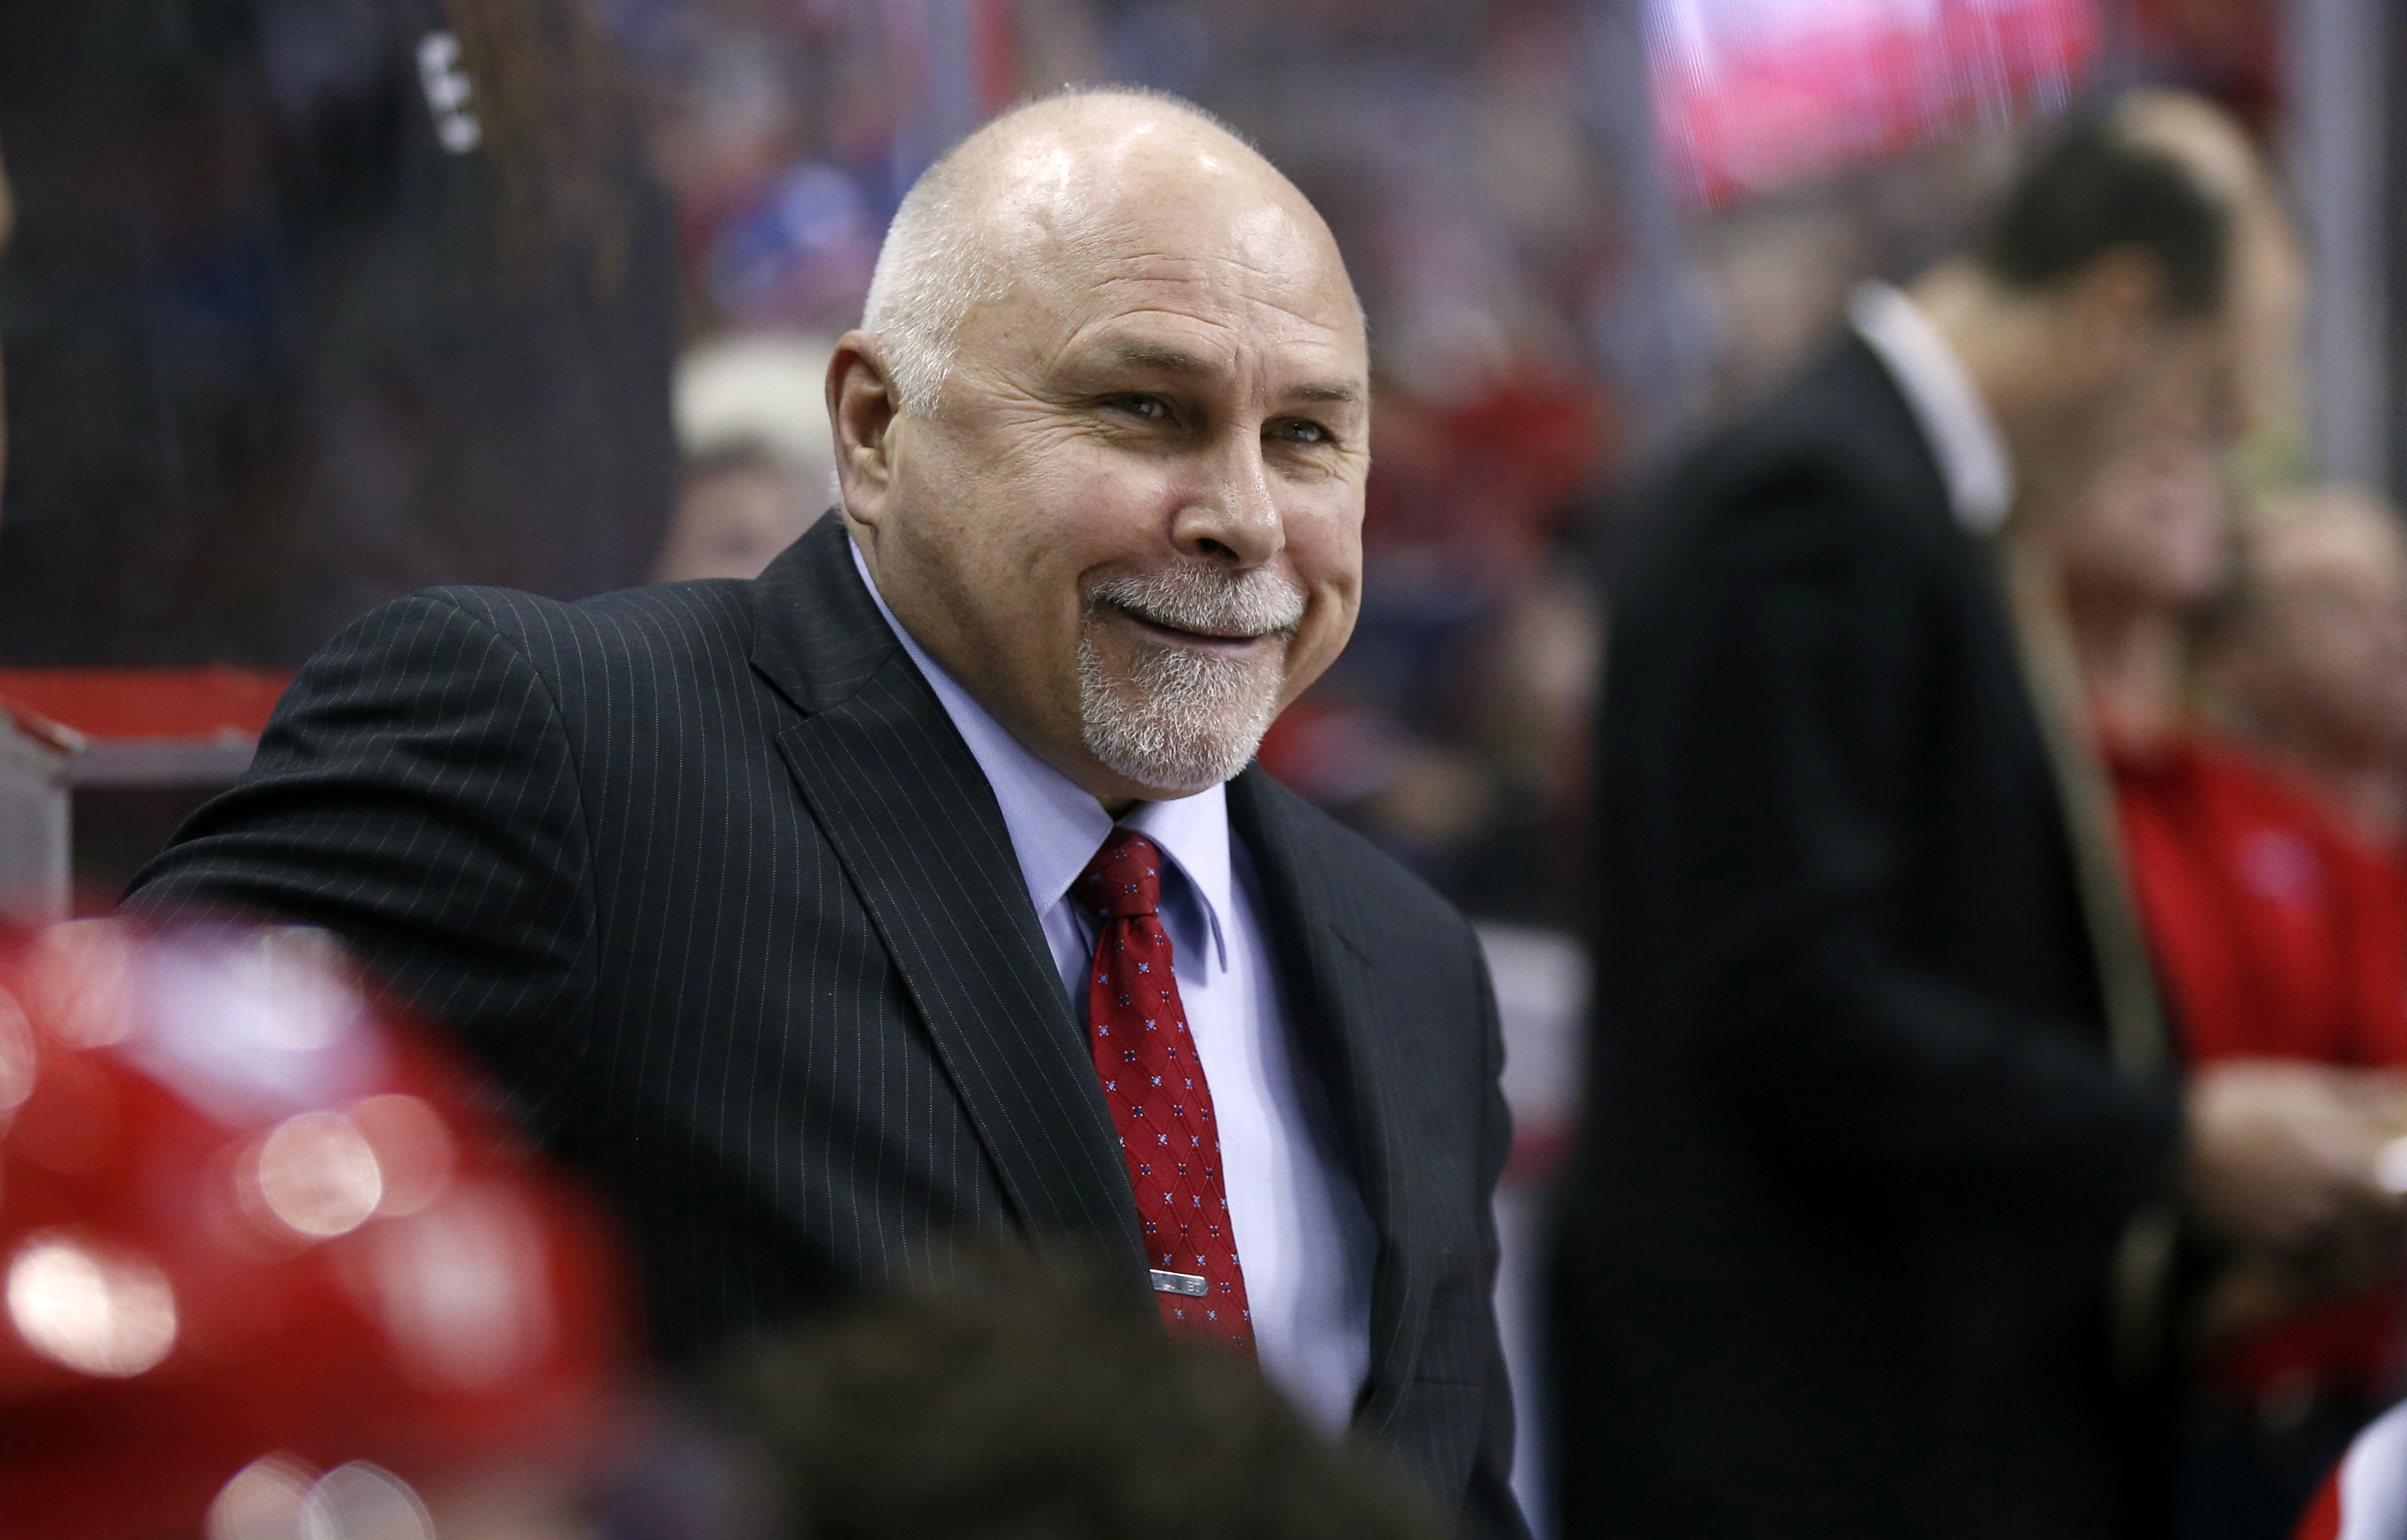 FILE - In this Jan. 17, 2016, file photo, Washington Capitals head coach Barry Trotz smiles in the bench in the first period of an NHL hockey game against the New York Rangers in Washington. It looks like Washington is running away with the No. 1 seed in